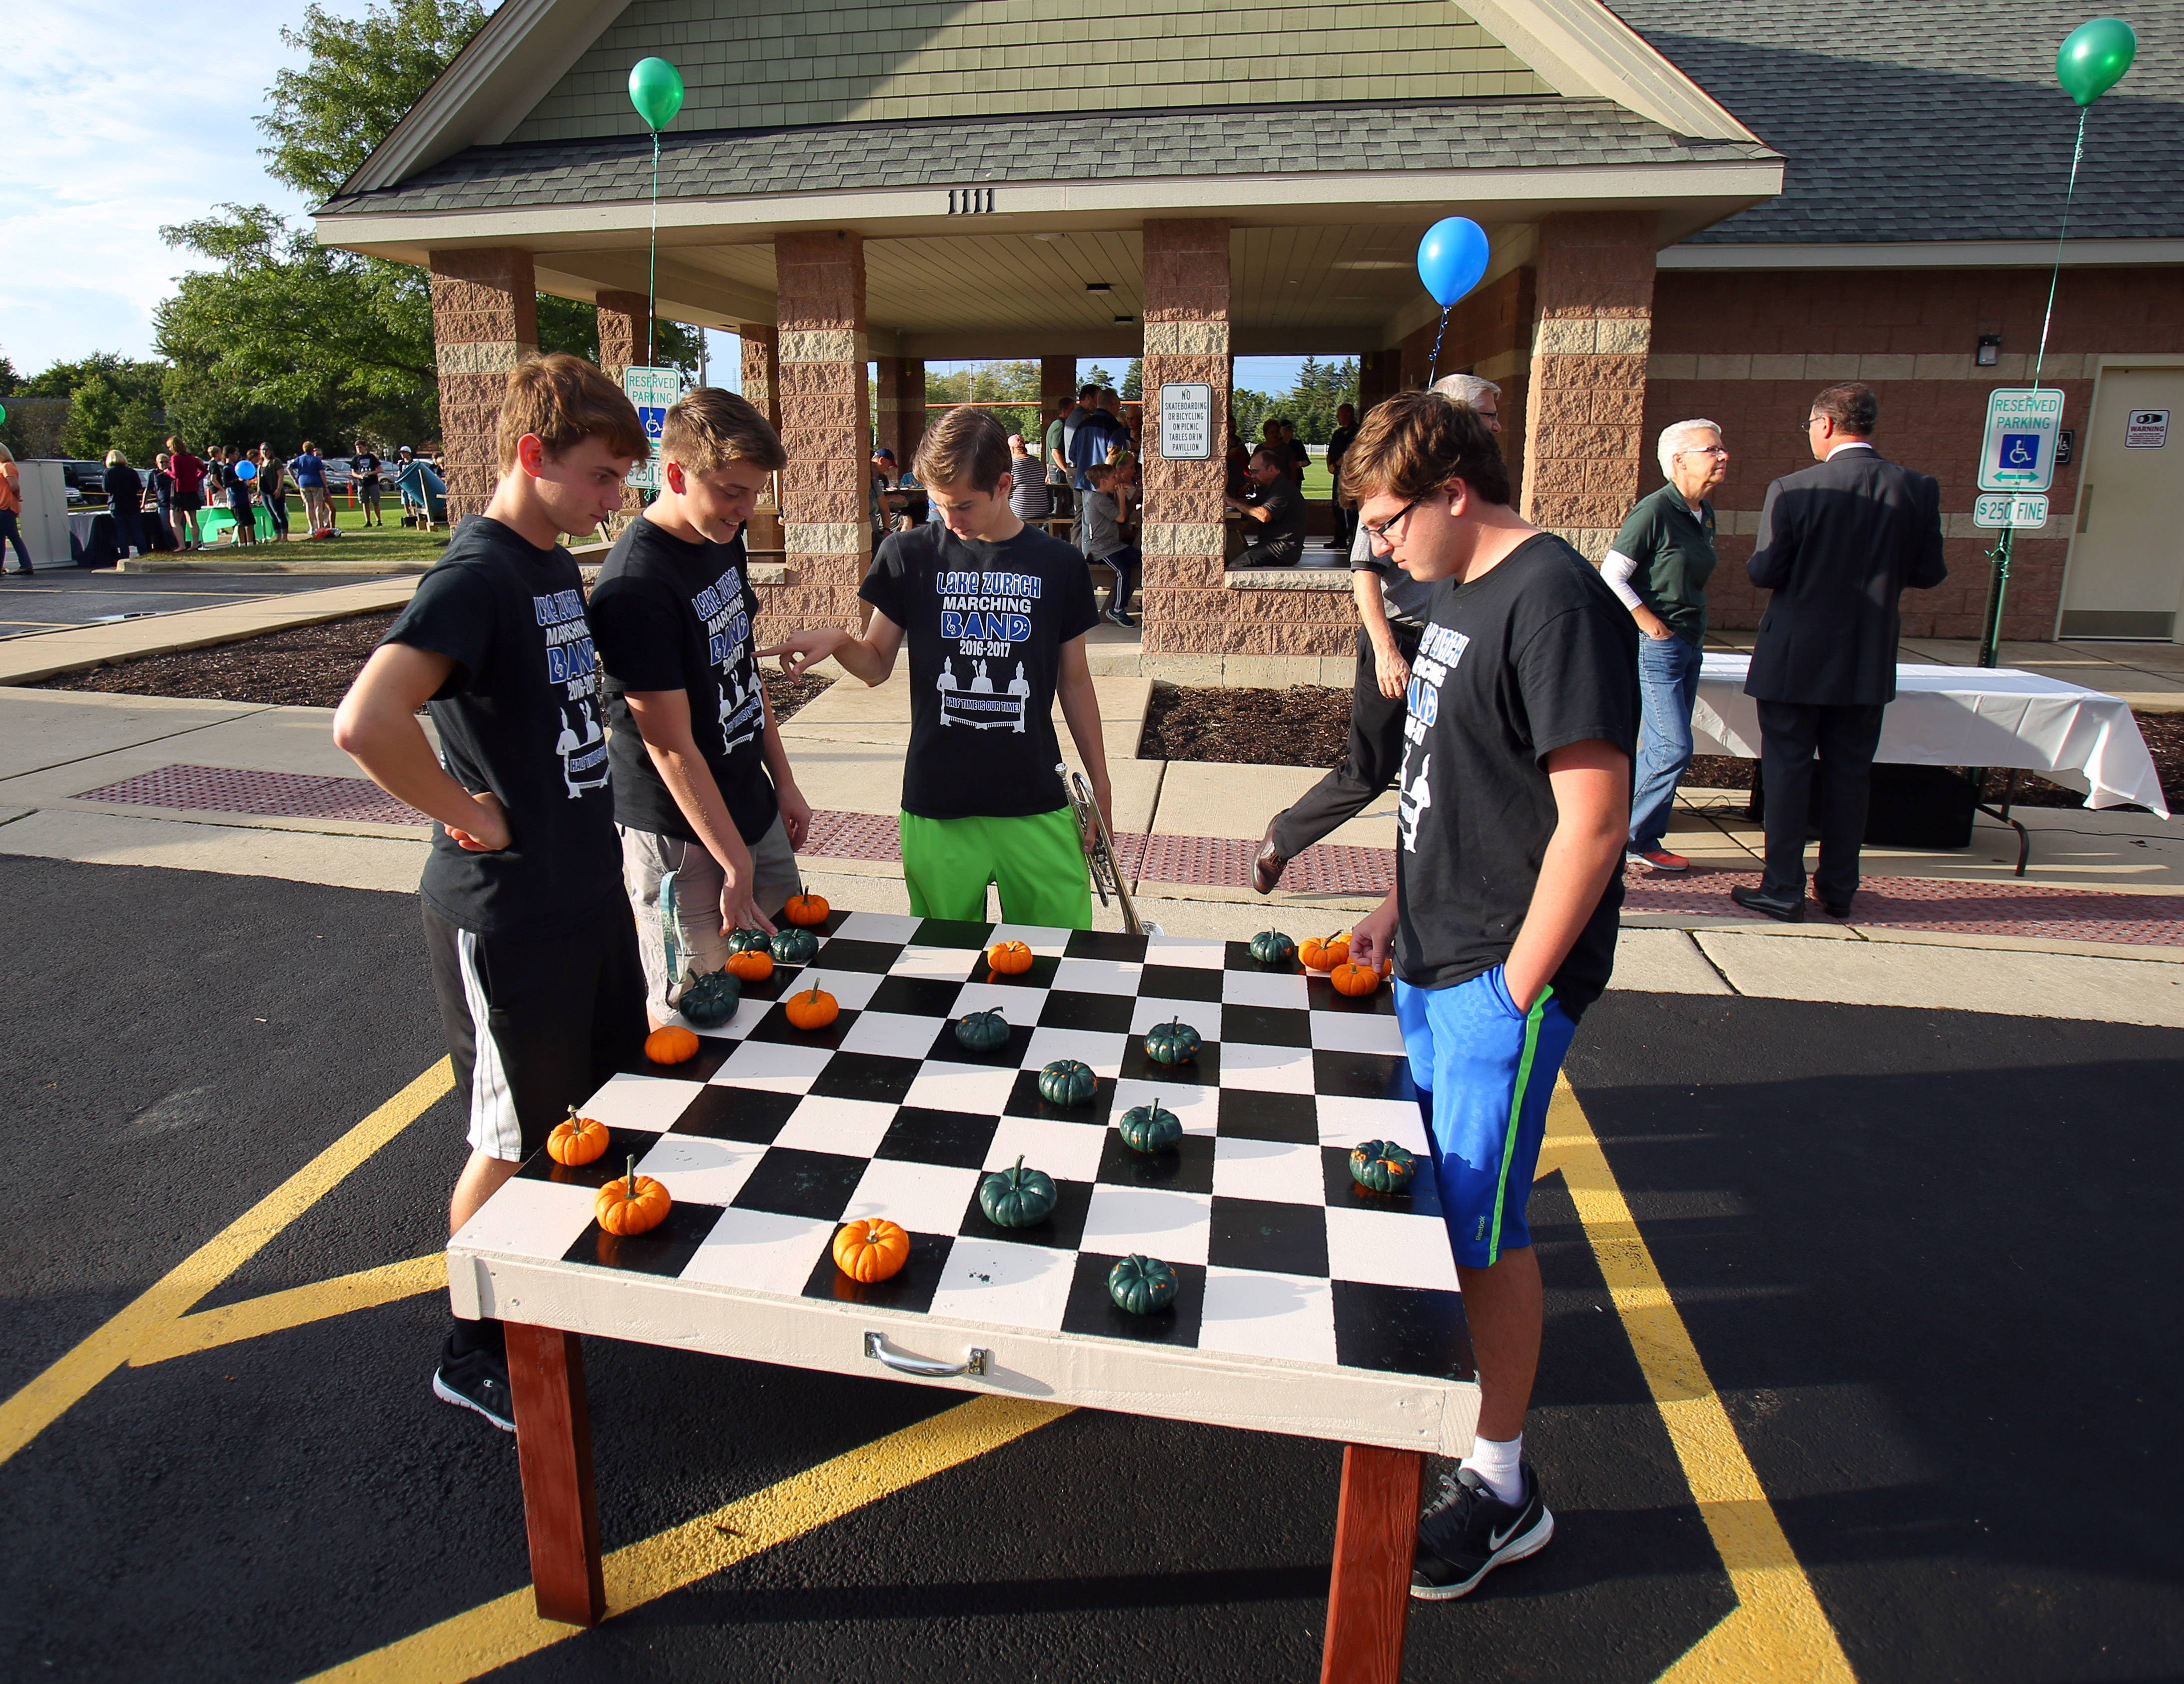 Members of the Lake Zurich High School marching band, from left, Steven Mueller, Nolan Foreman, Ethan Hepler and Eric Slaughter play checkers with pumpkins during the first Ela Day Wednesday at Knox Park in Lake Zurich.